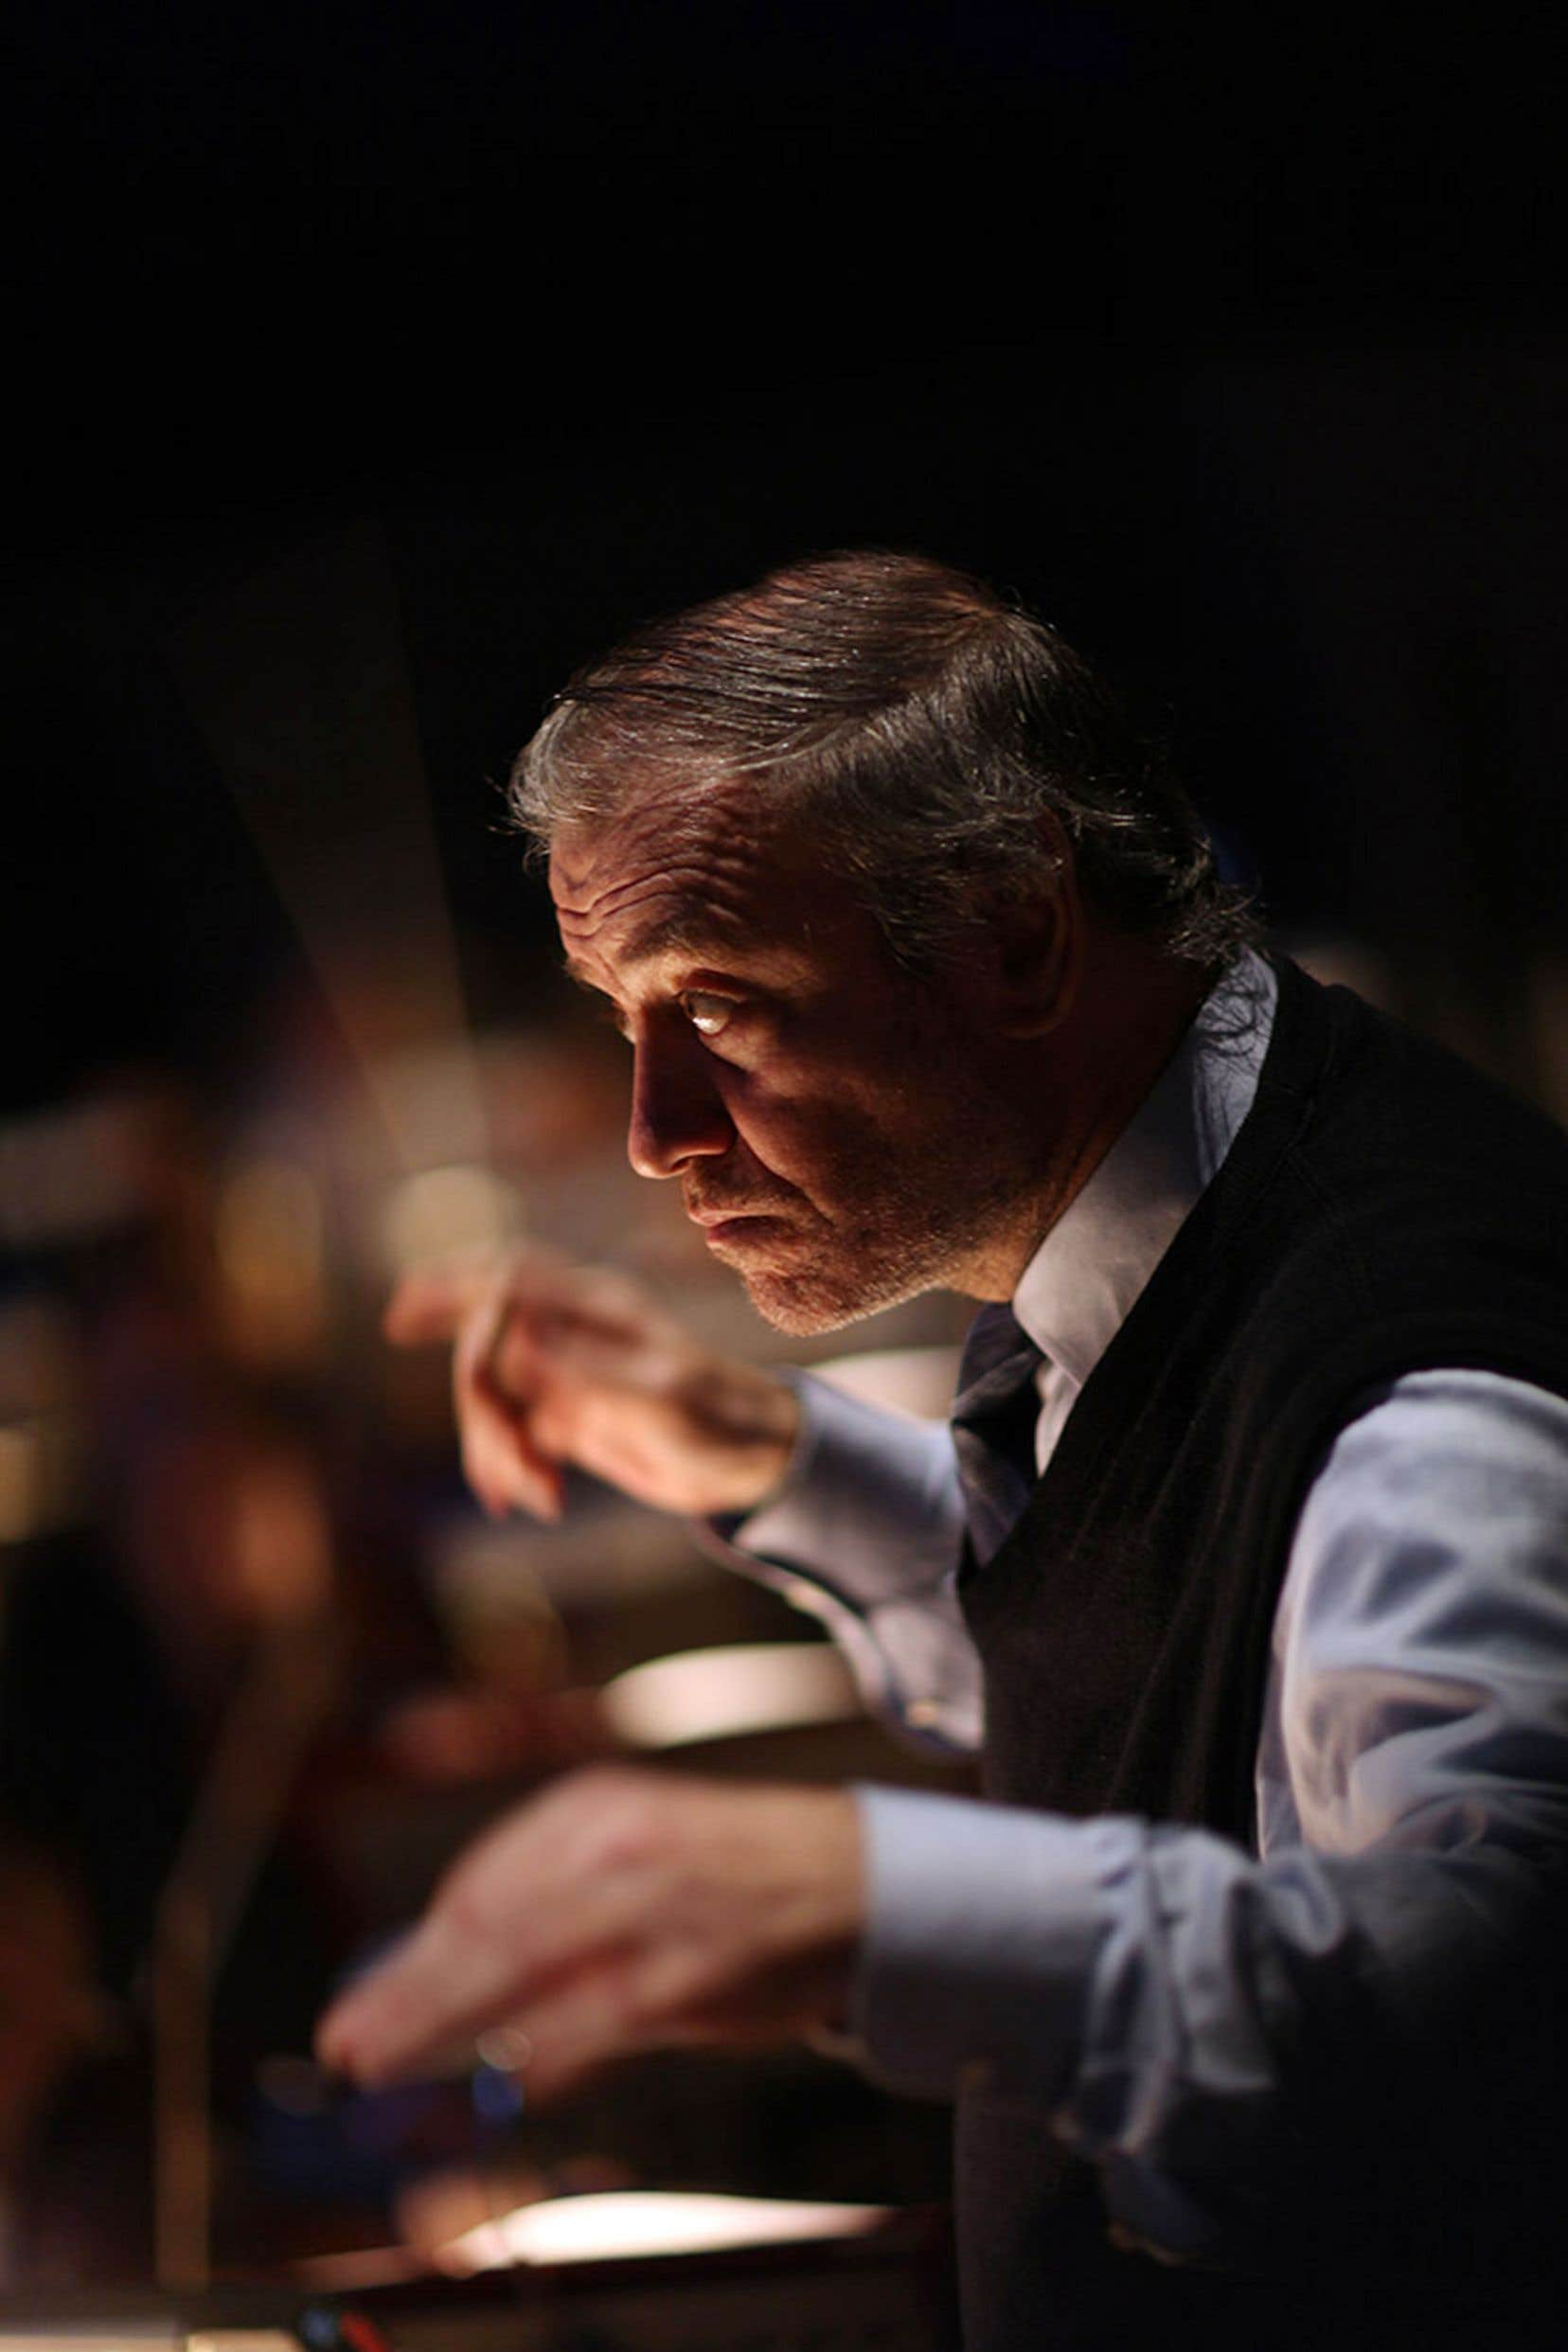 Le chef d'orchestre russe Valery Gergiev